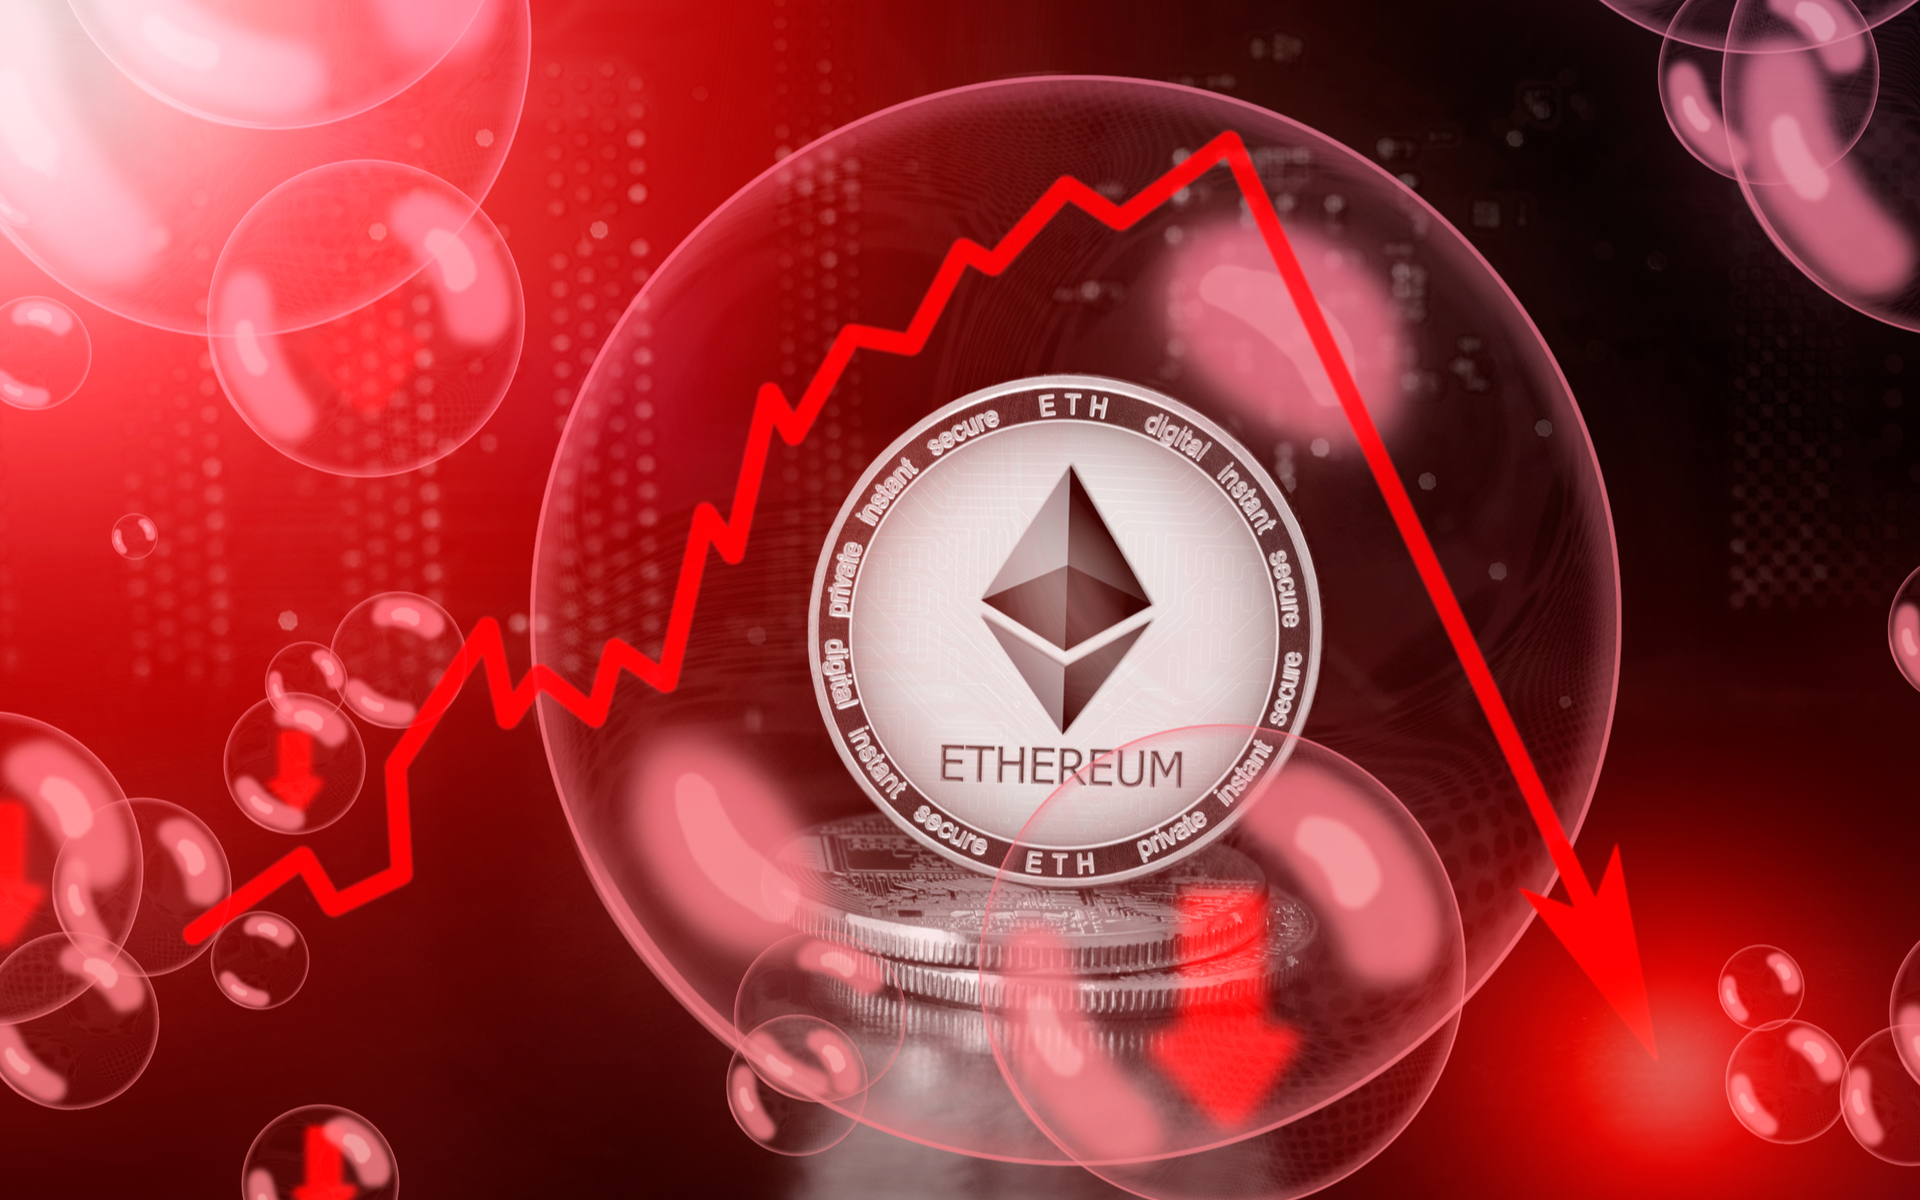 ethereum ethusd price analysis